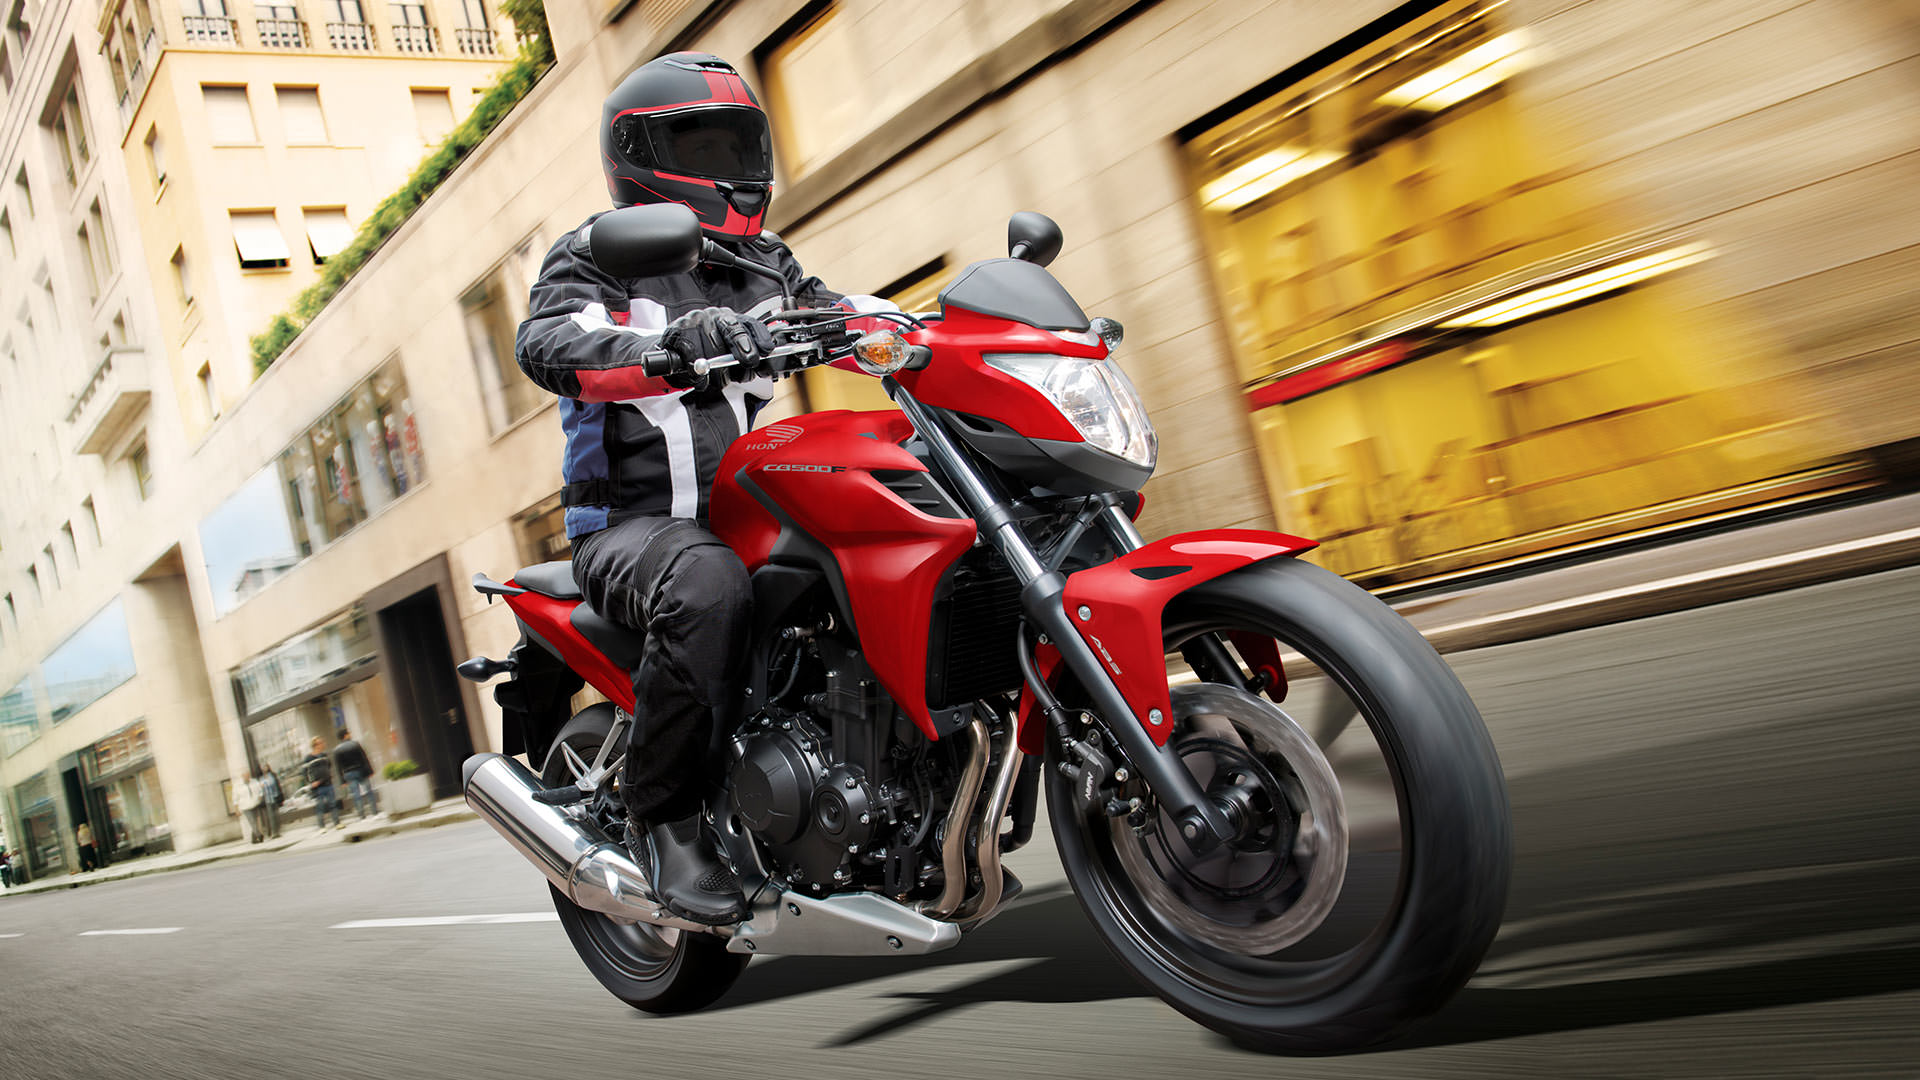 2013 Honda CB500F Review Specs Pictures Video